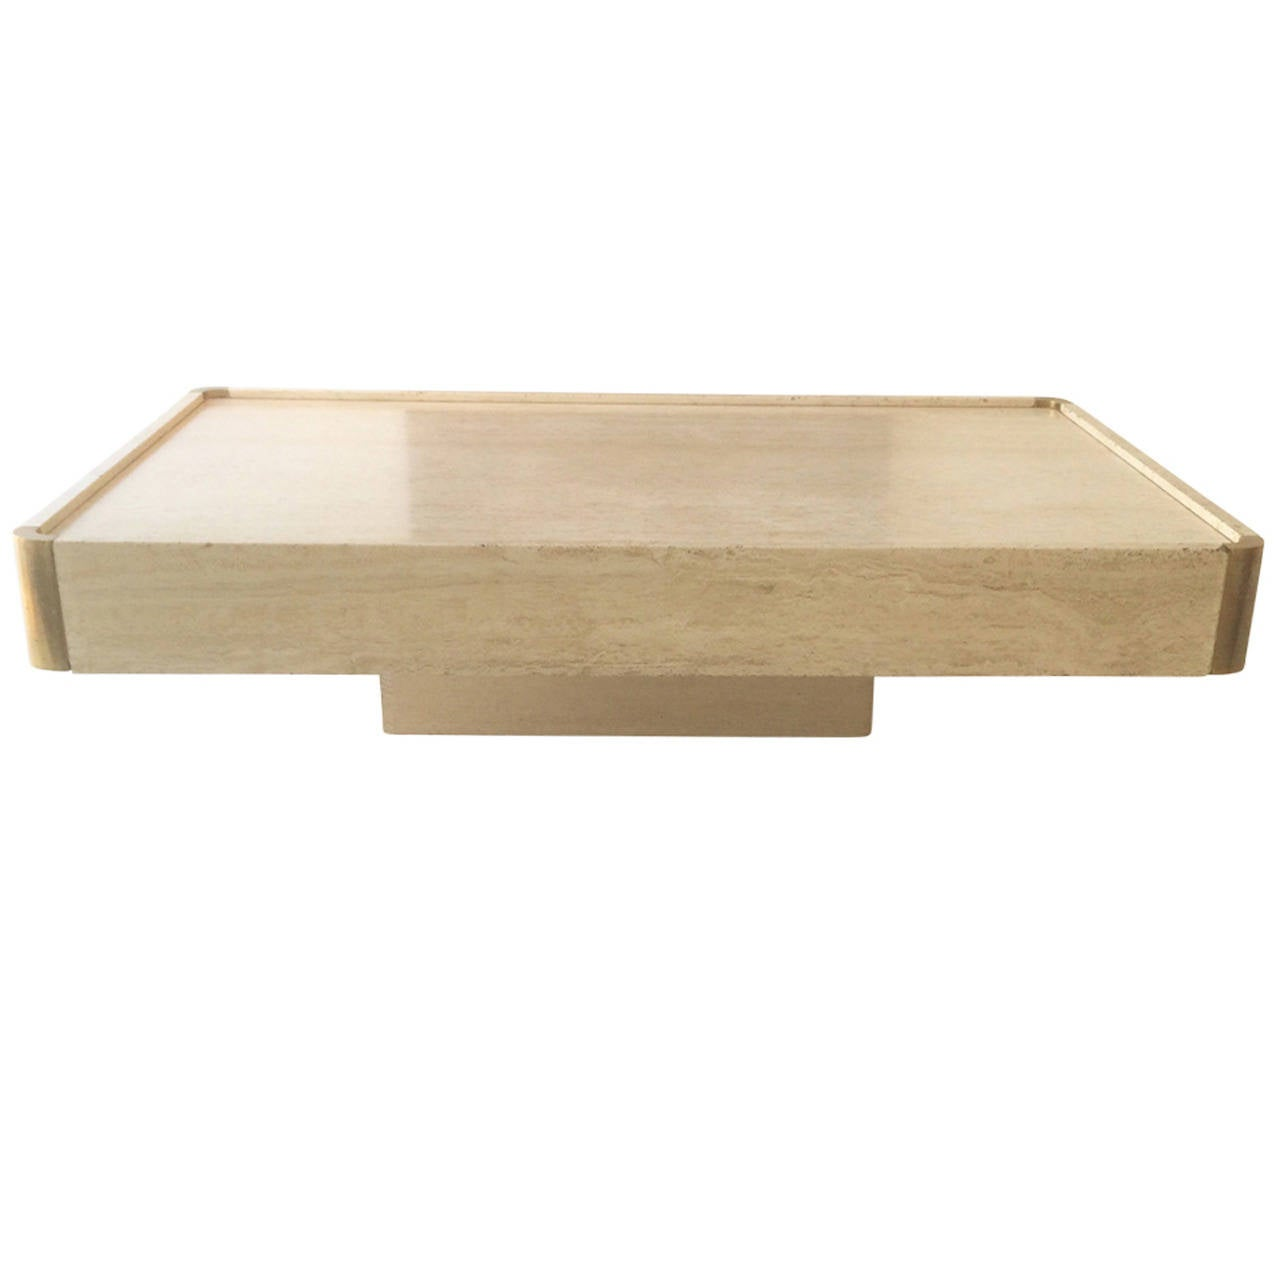 1970s Italian Travertine Coffee Table For Mario Sabot At 1stdibs